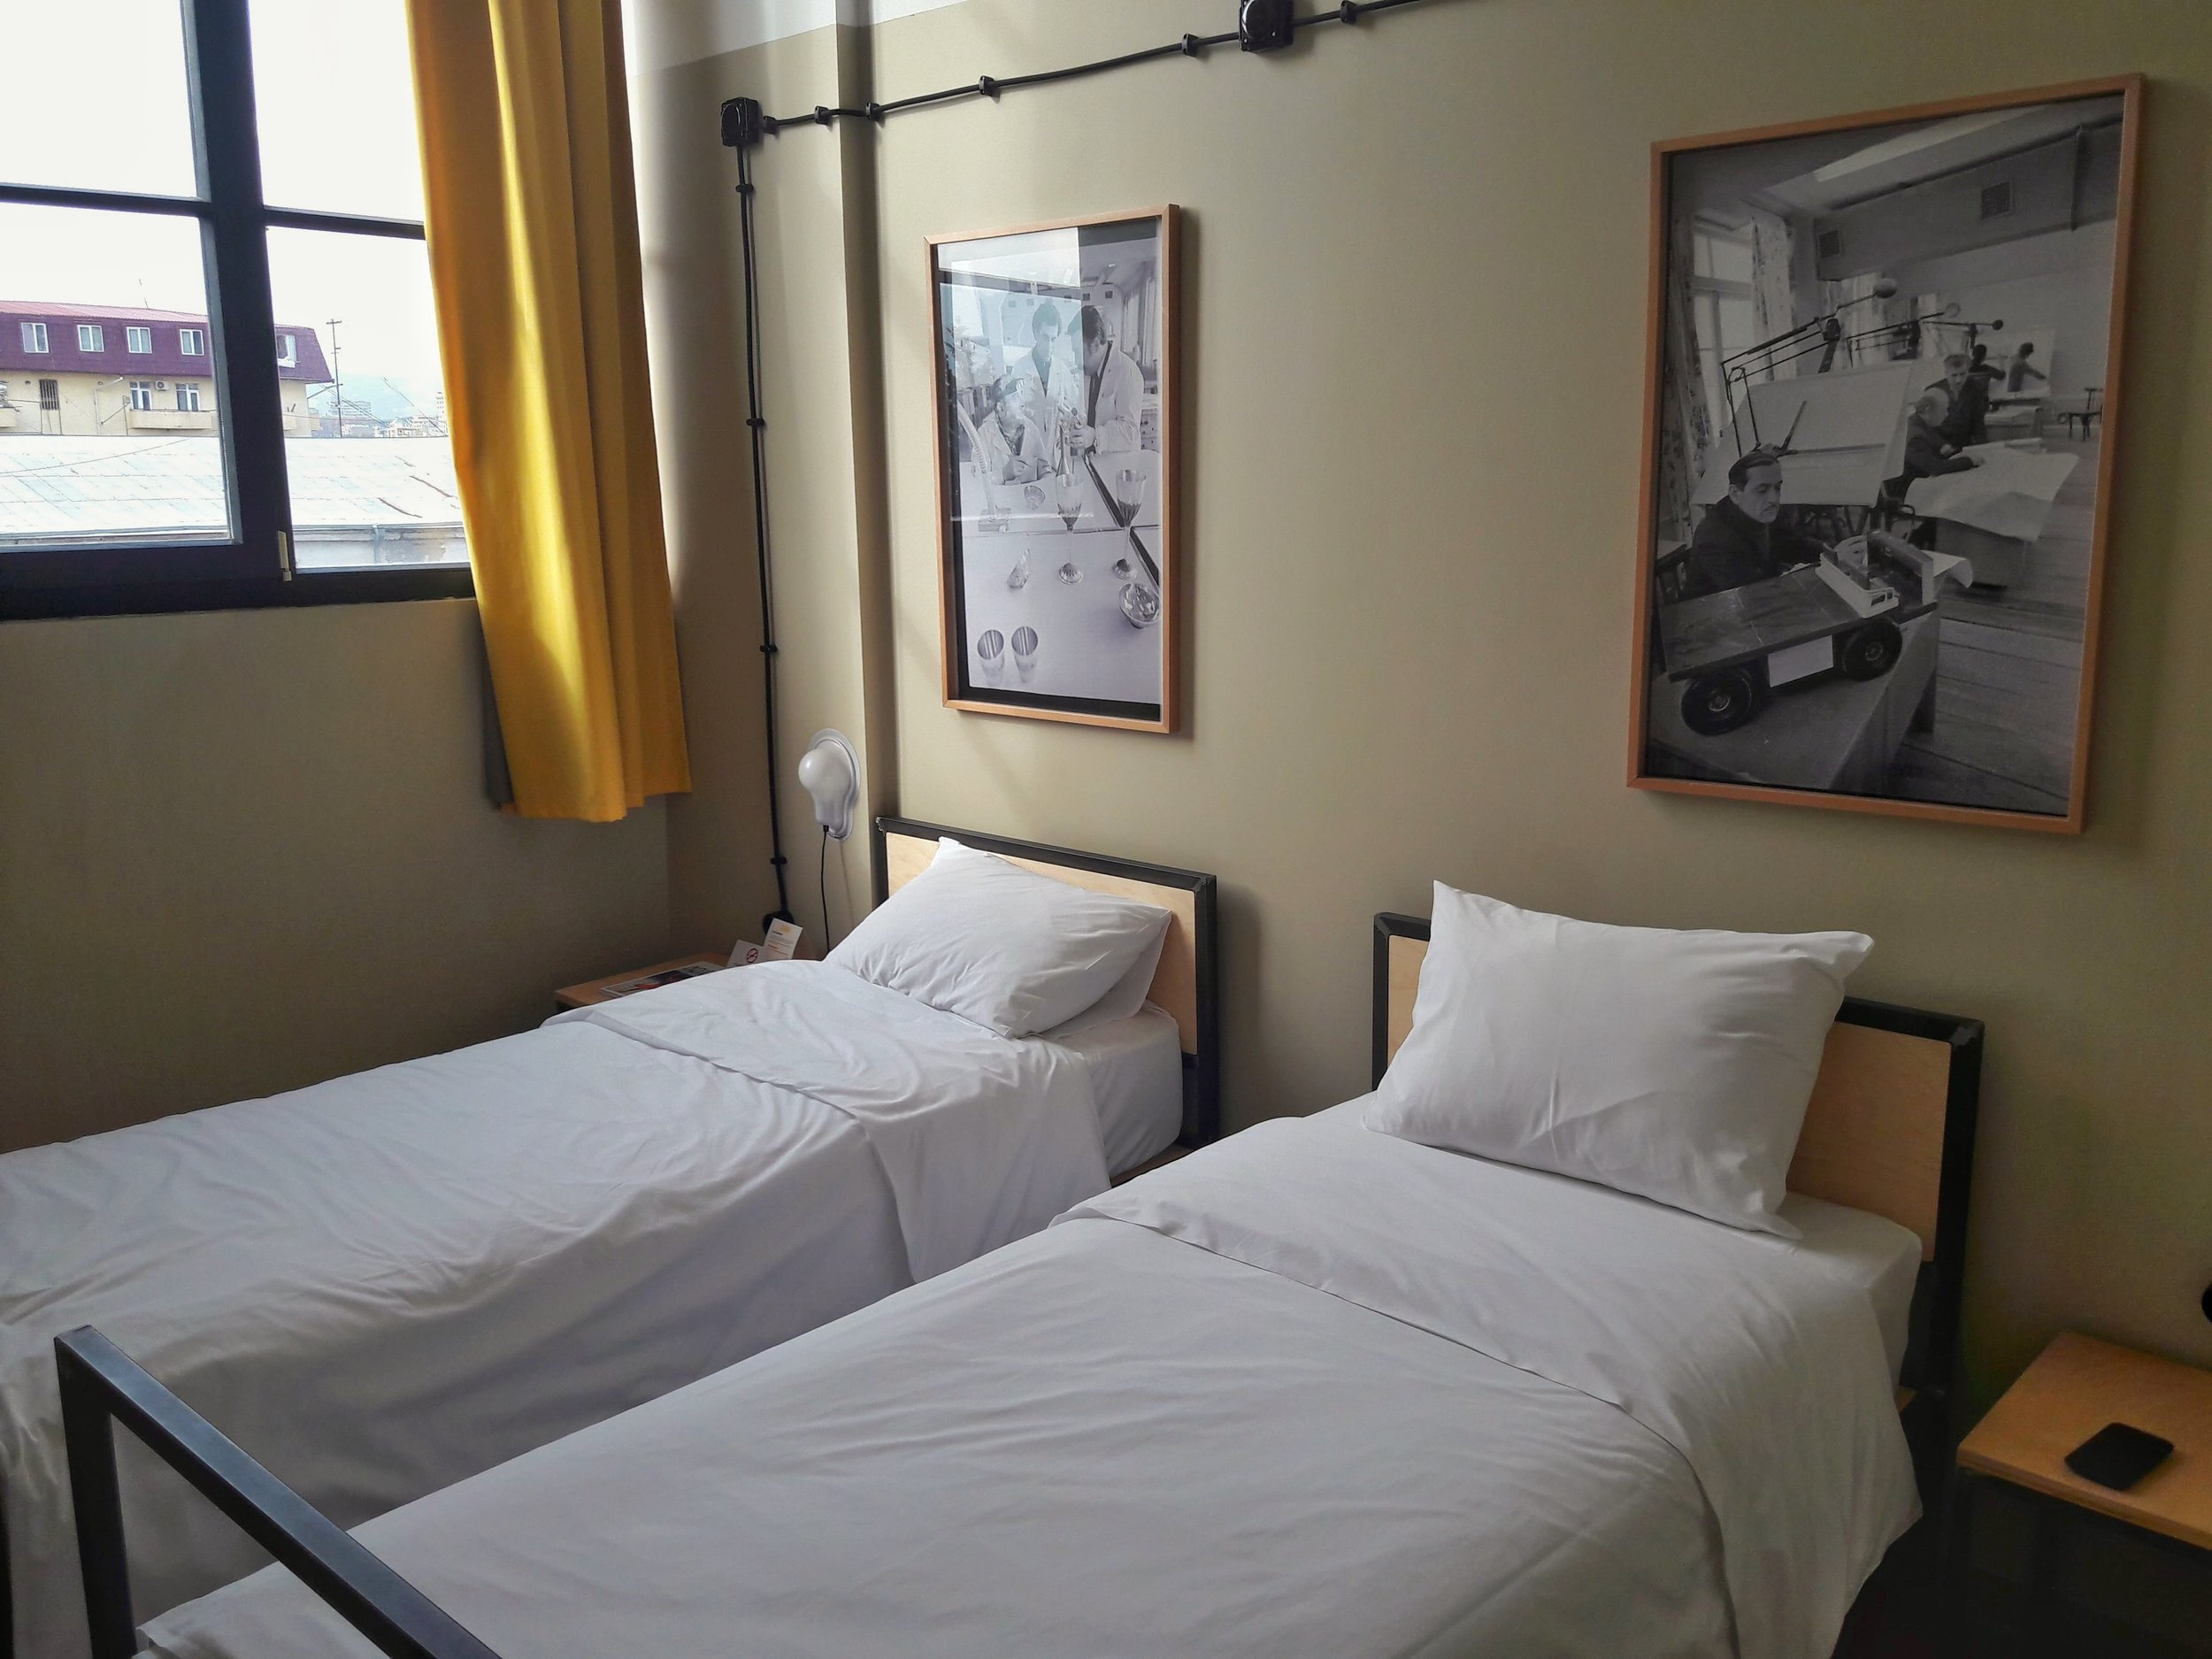 Fabrika is the hippest place to stay in Tbilisi. One of the best places to stay in Tbilisi.